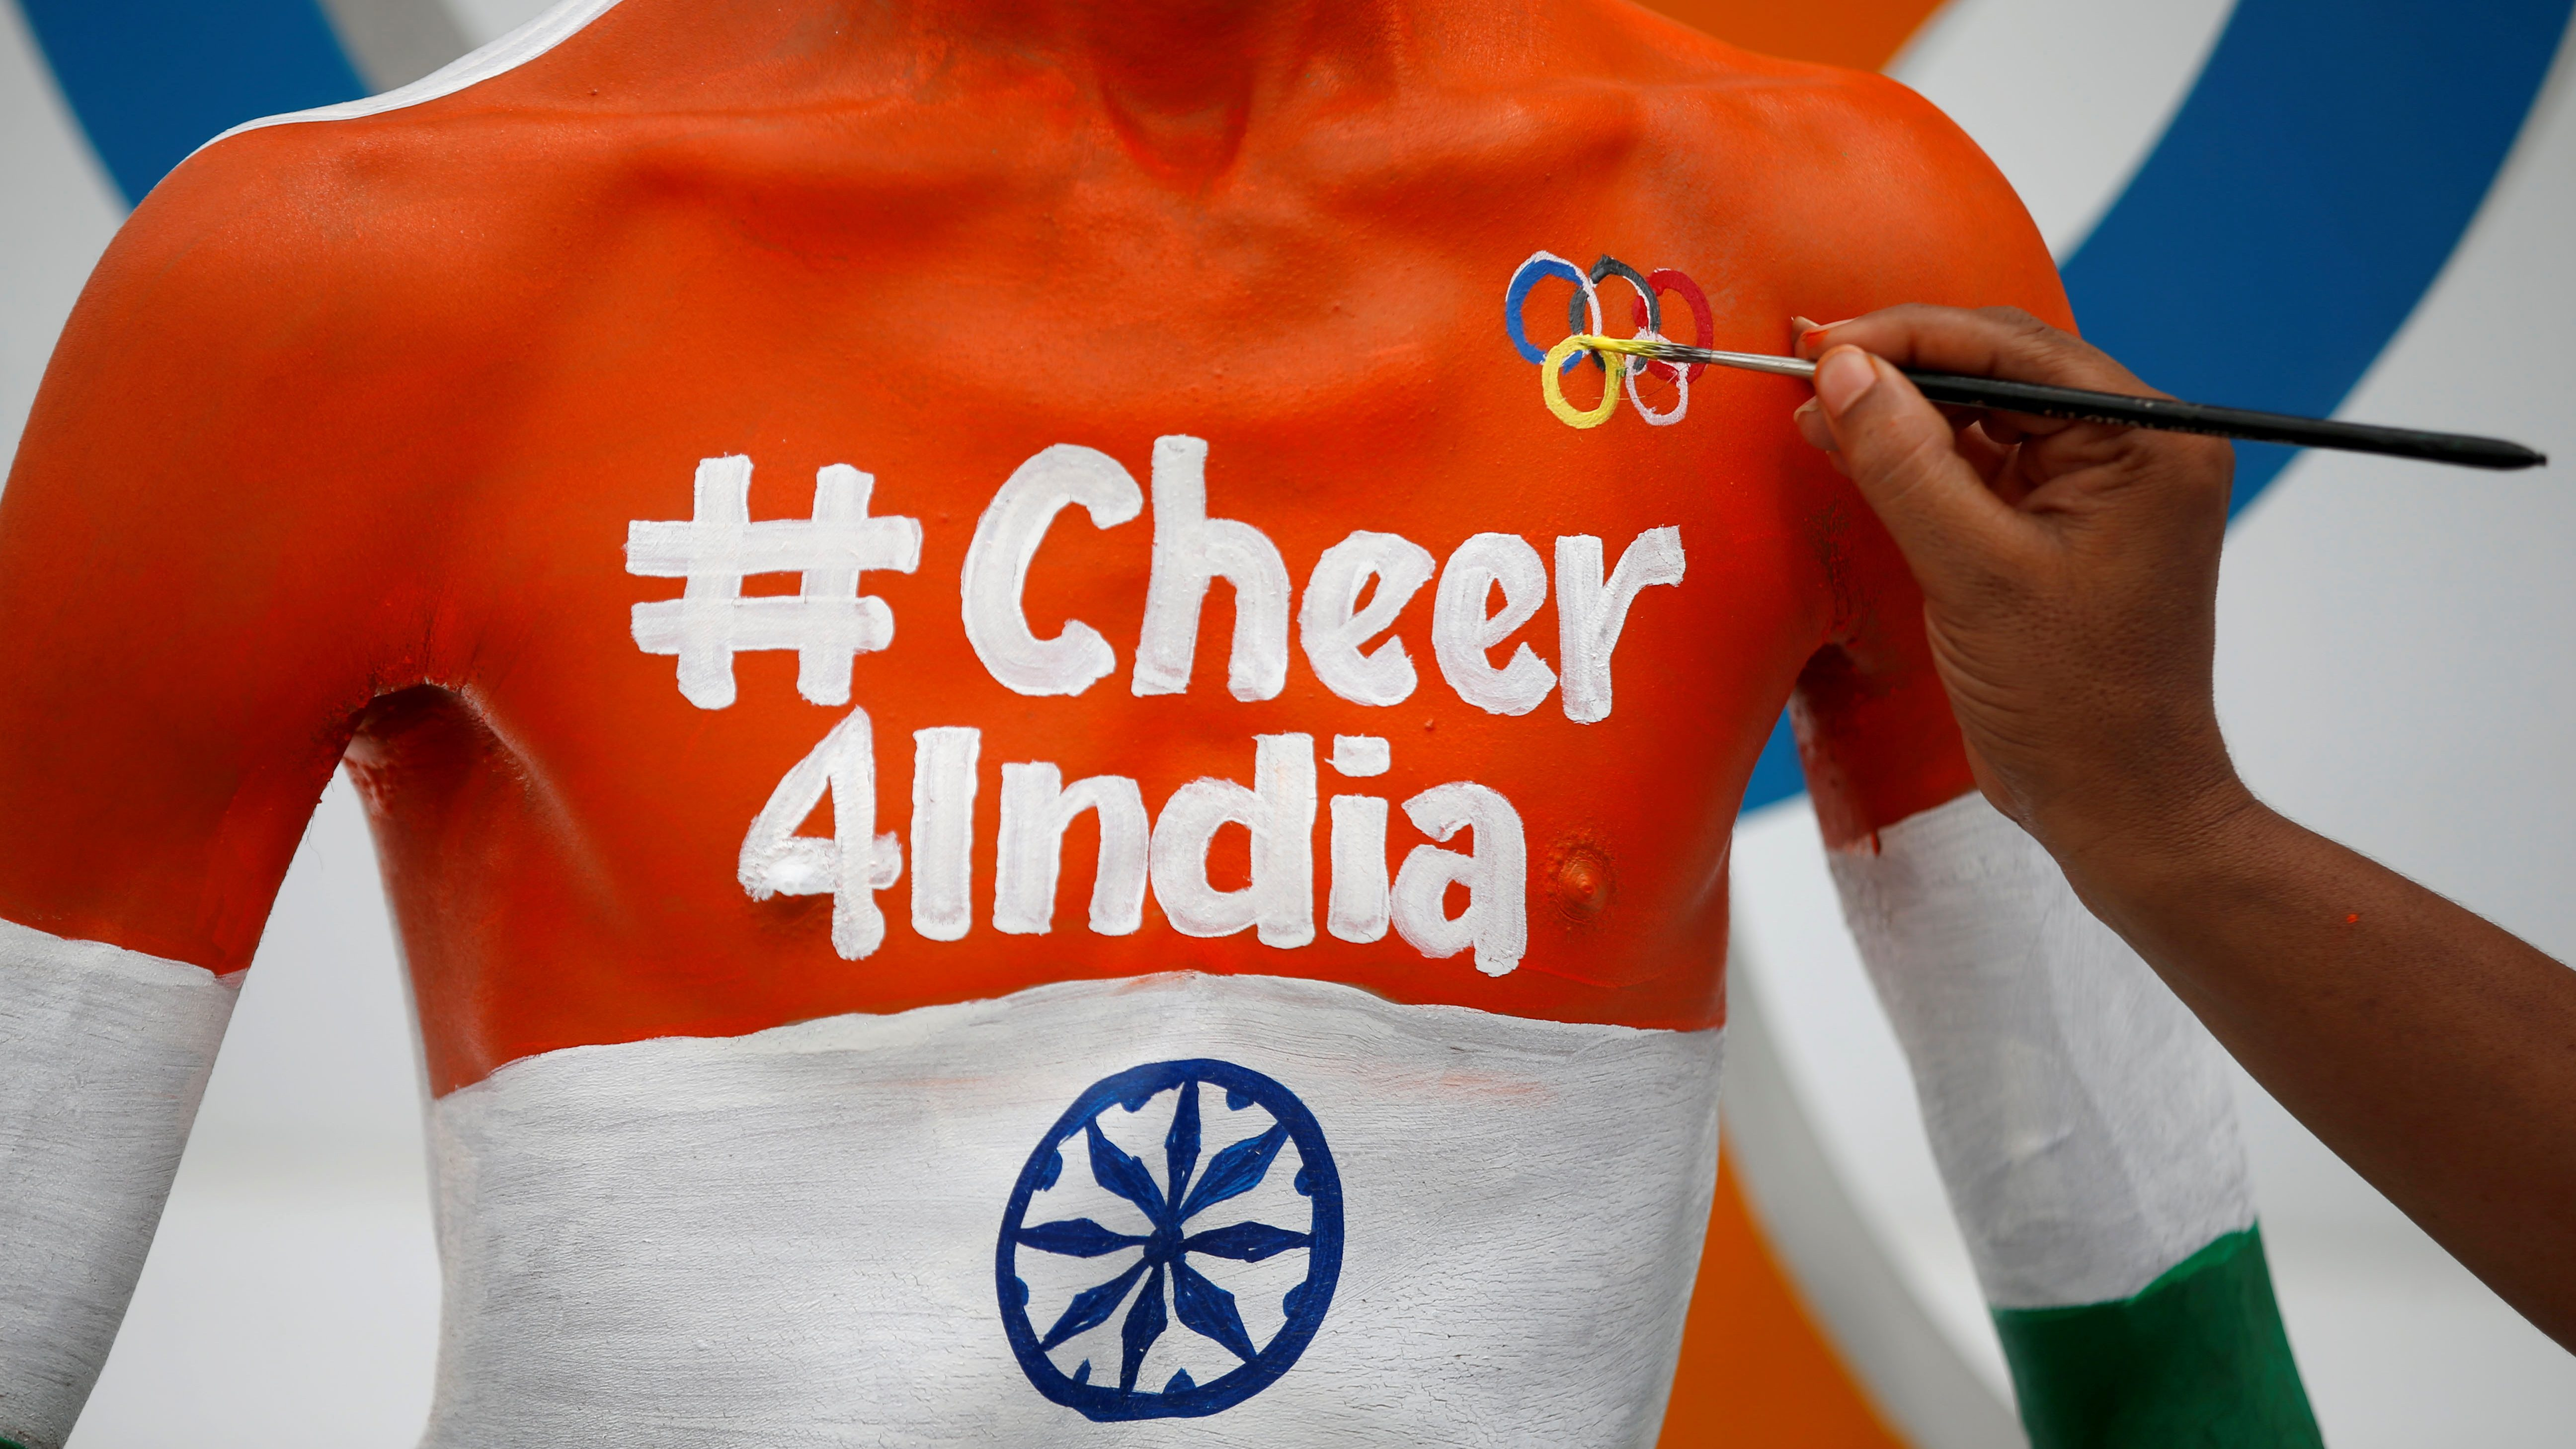 Arun Haryani has the Olympic rings painted on his body as he cheers on India's team for the Tokyo 2020 Olympics, in Ahmedabad